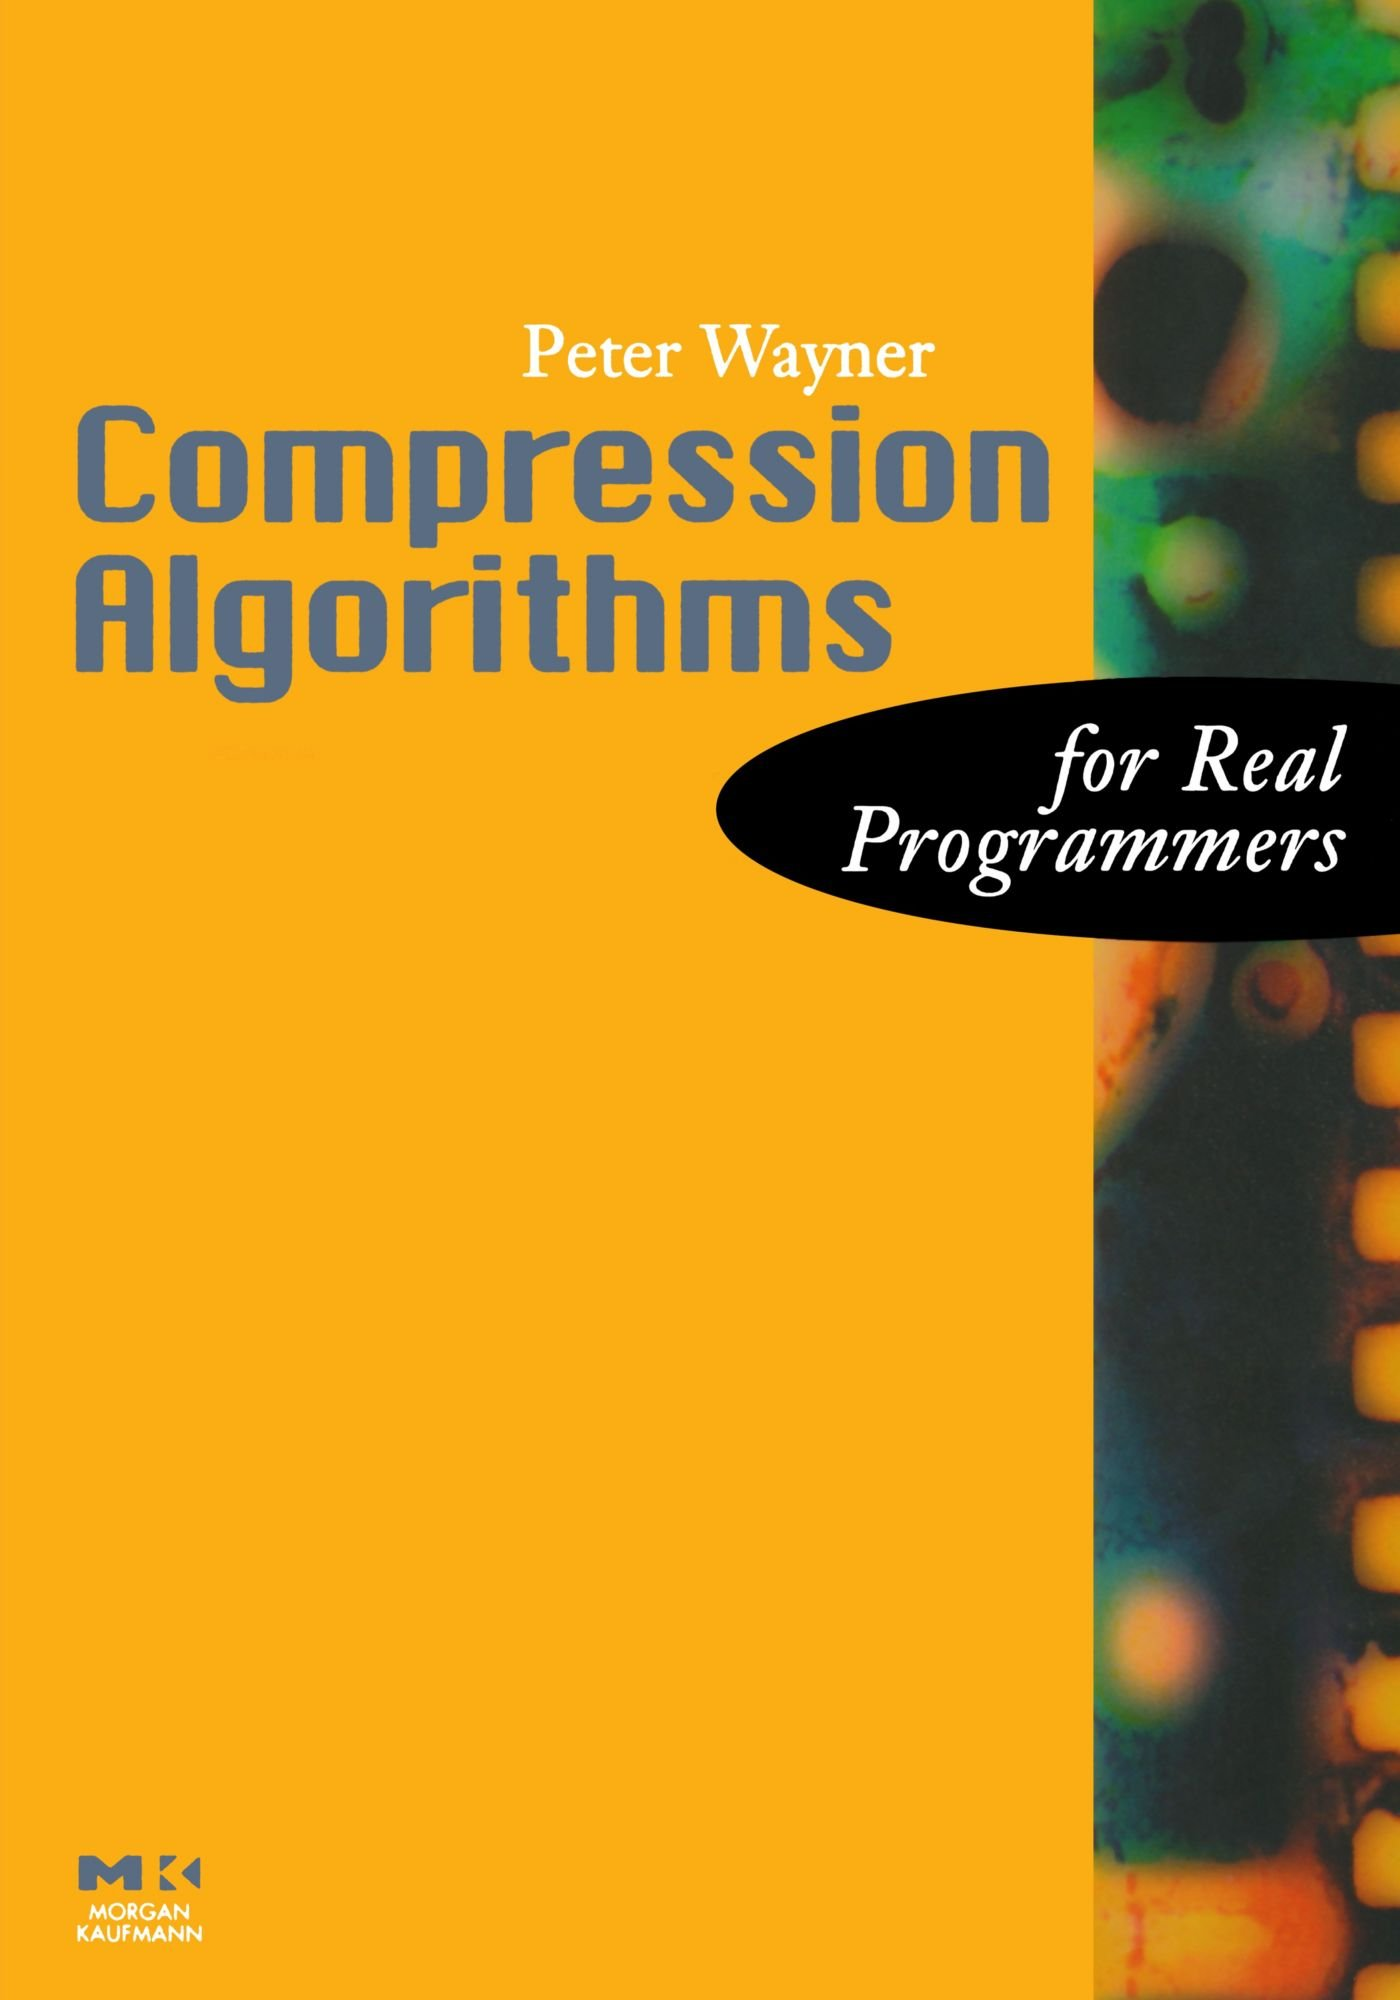 Compression Algorithms for Real Programmers (The For Real Programmers Series) by Morgan Kaufmann